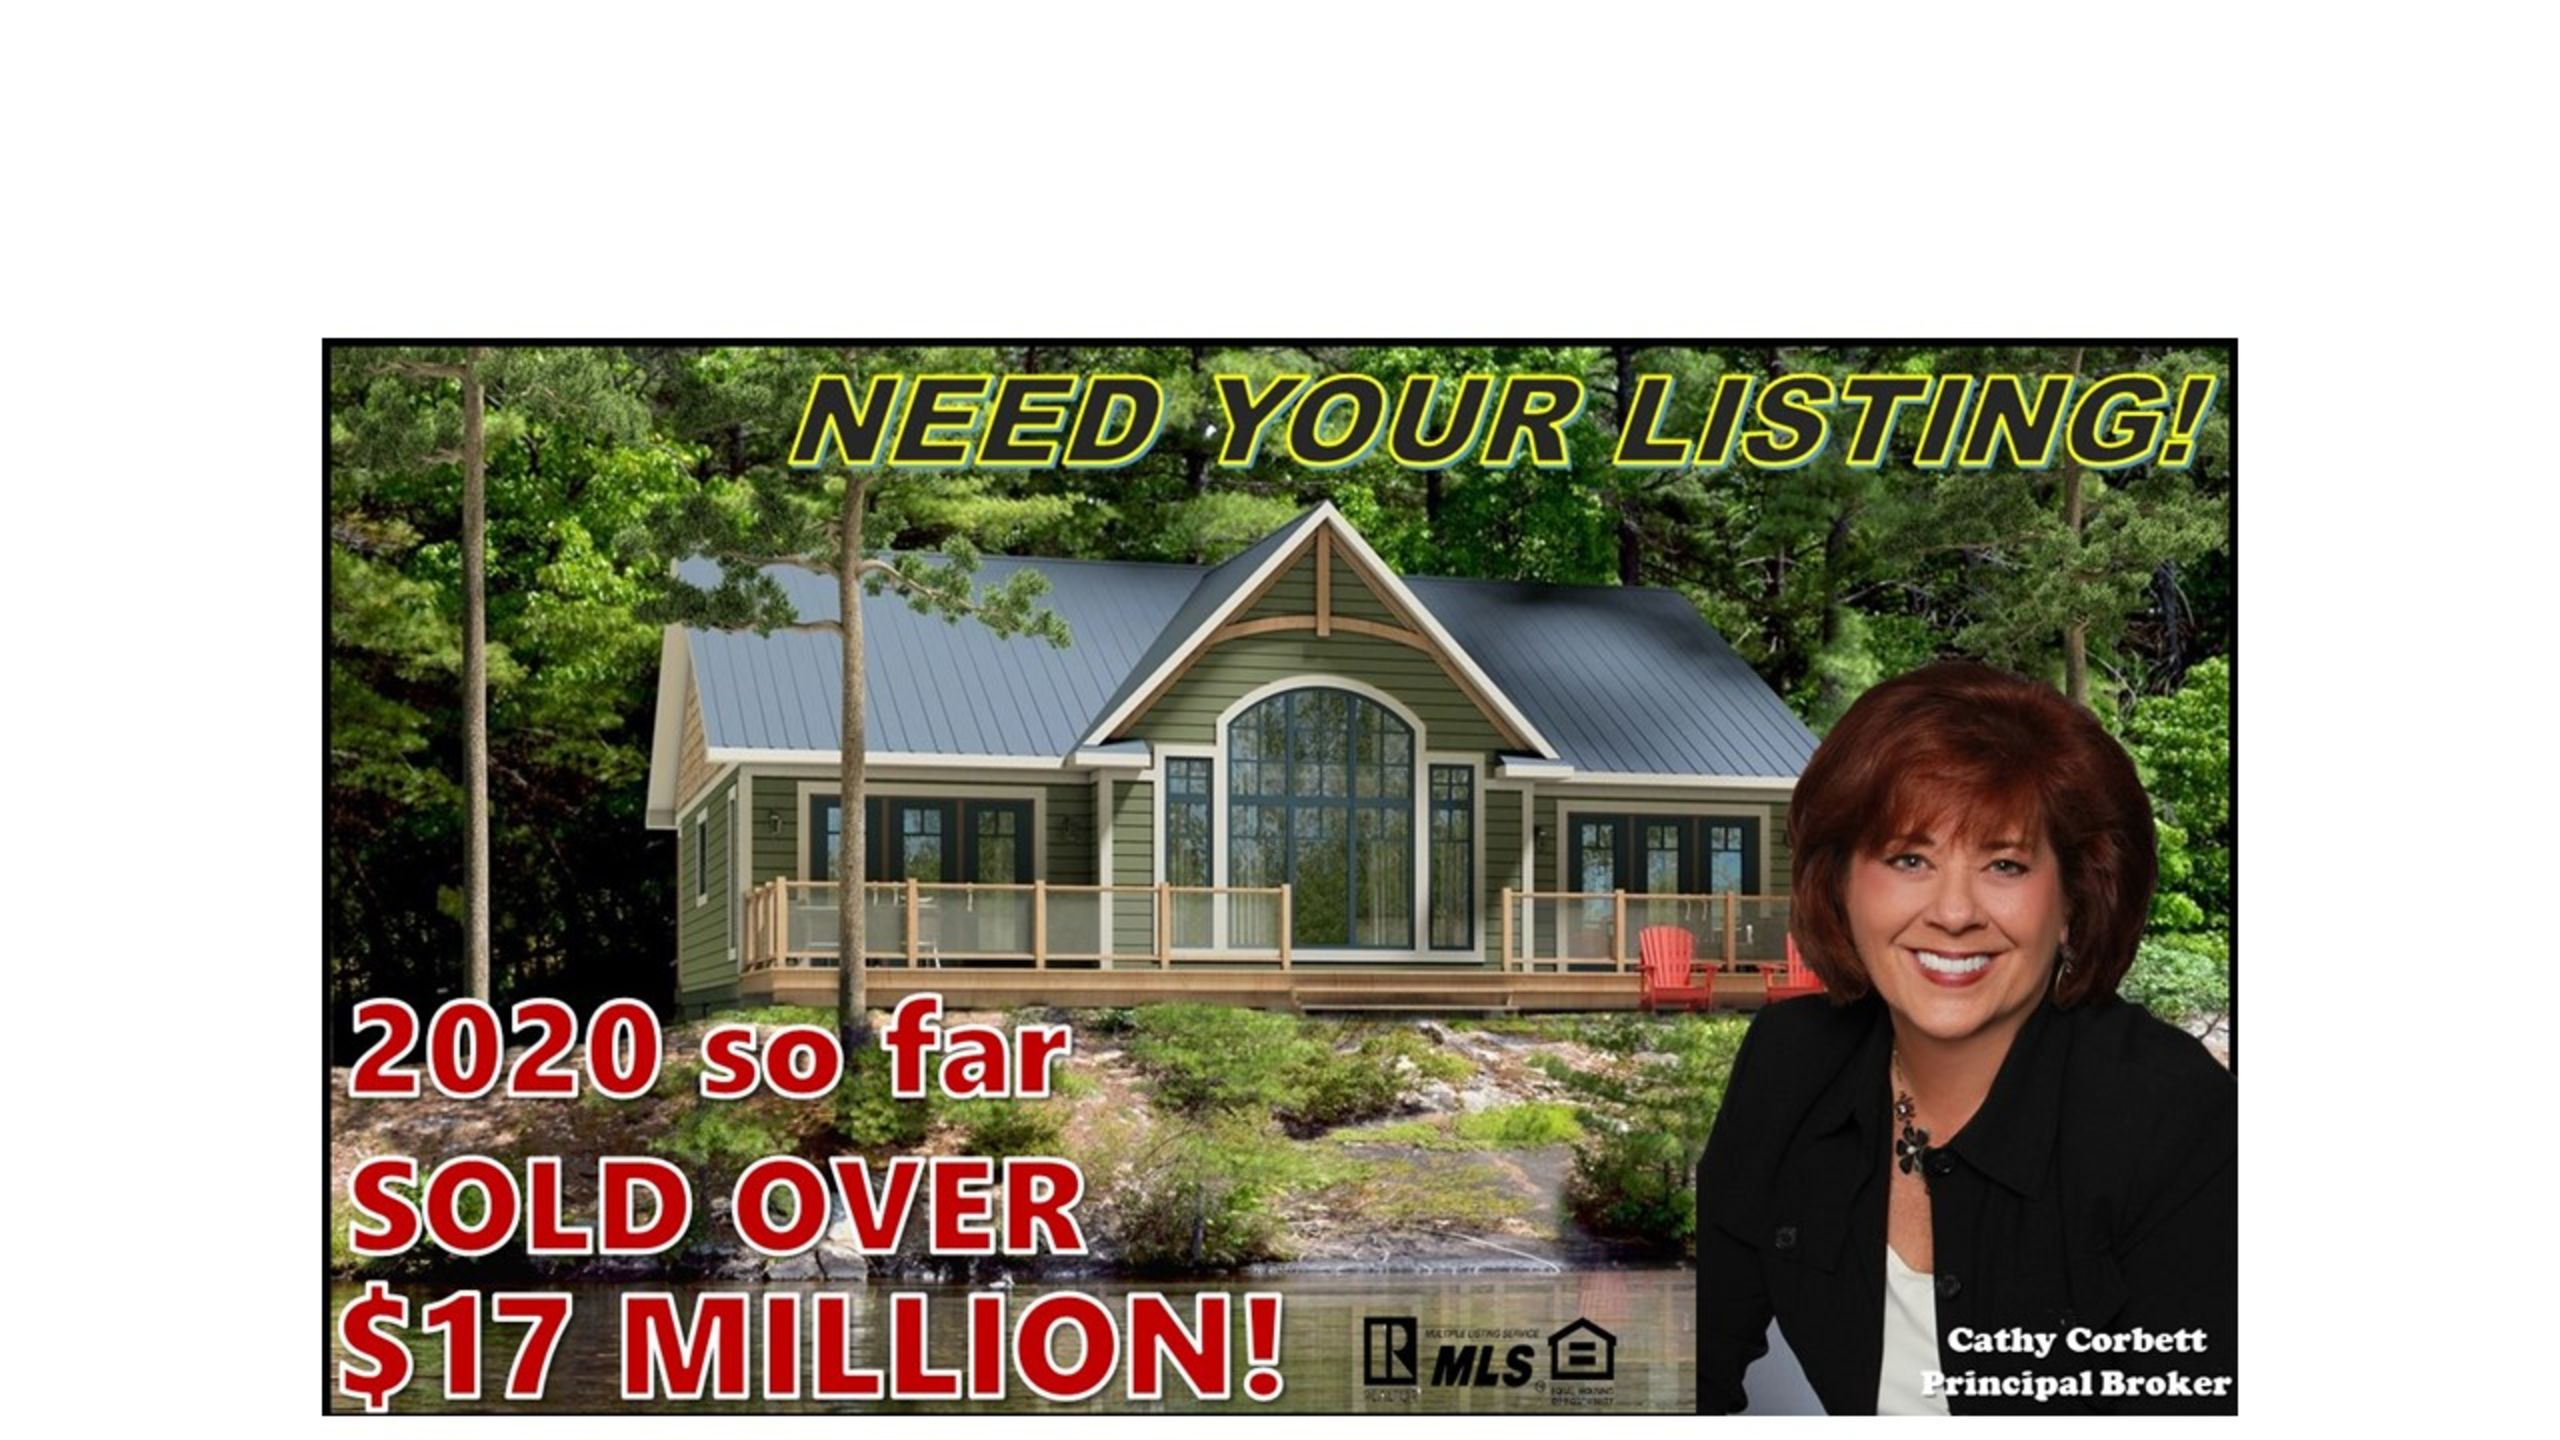 NEED YOUR LISTING!